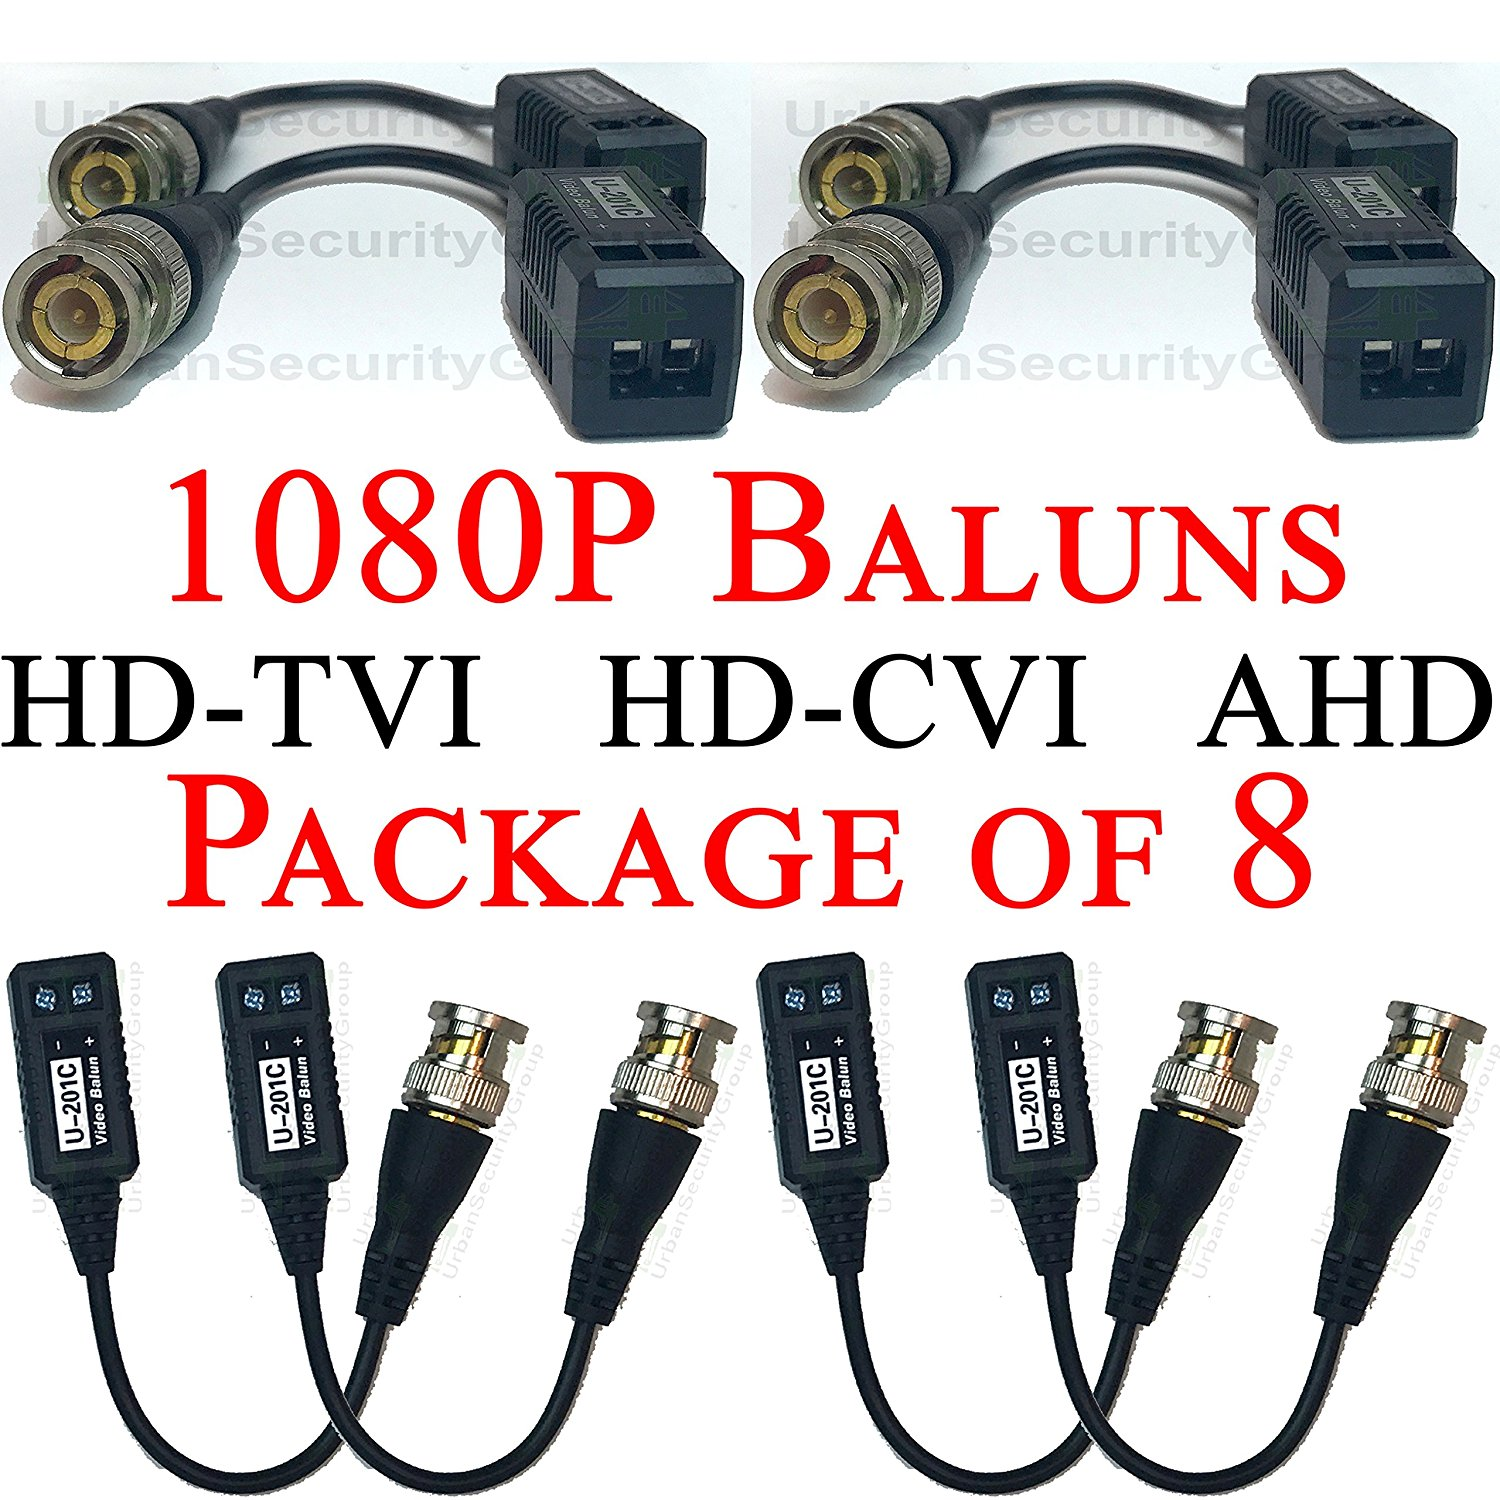 USG Premium Pack of Eight (8X) HD 1080P CCTV Balun Transceiver : Gold BNC + 2-Wire Screw Terminal : Video Over UTP Network Cable : Passive : Transmit 1080p Video for HD-TVI, HD-CVI, AHD Equipment